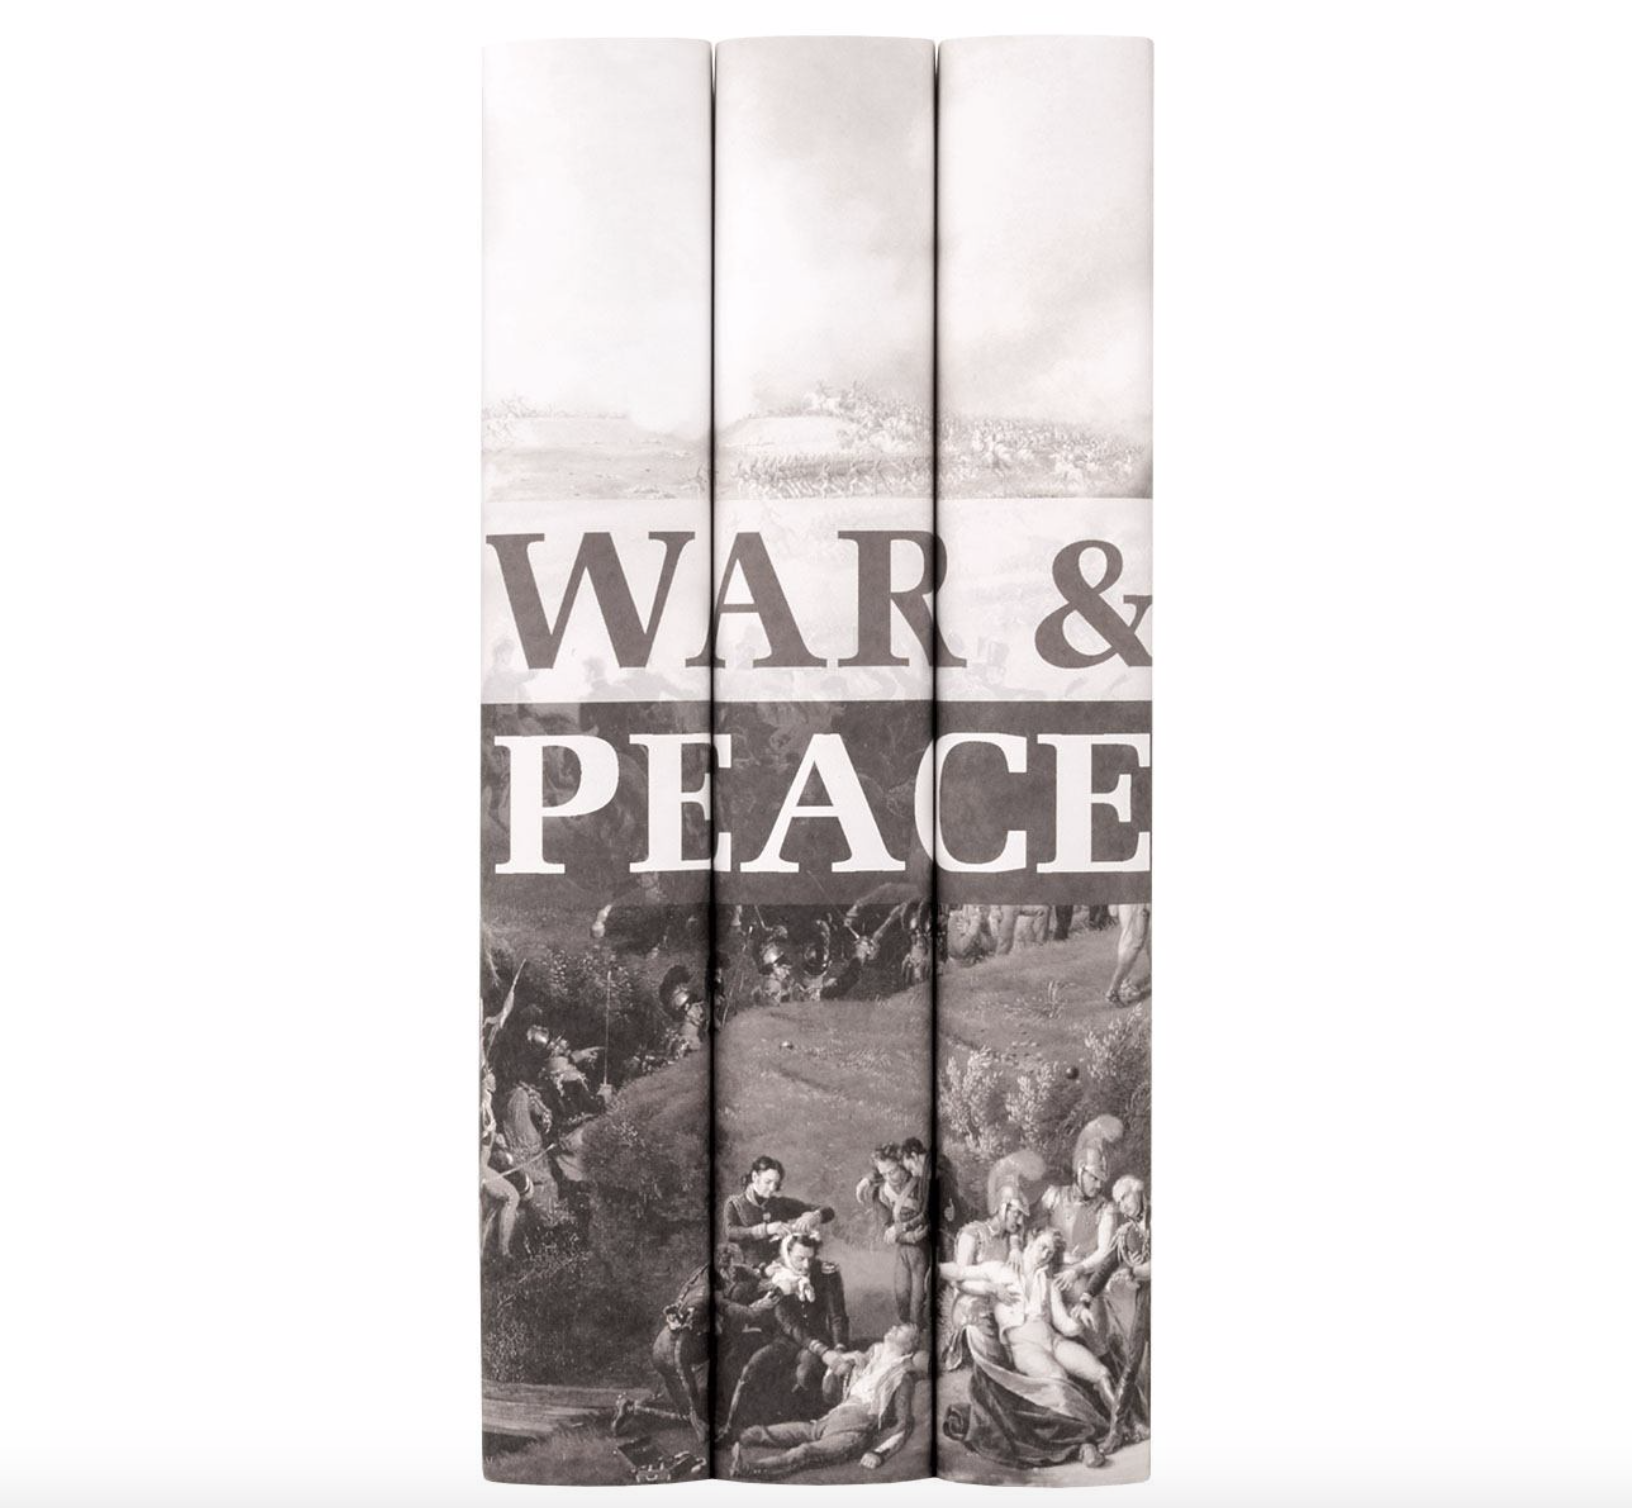 Juniper Tolstoy's War and Peace